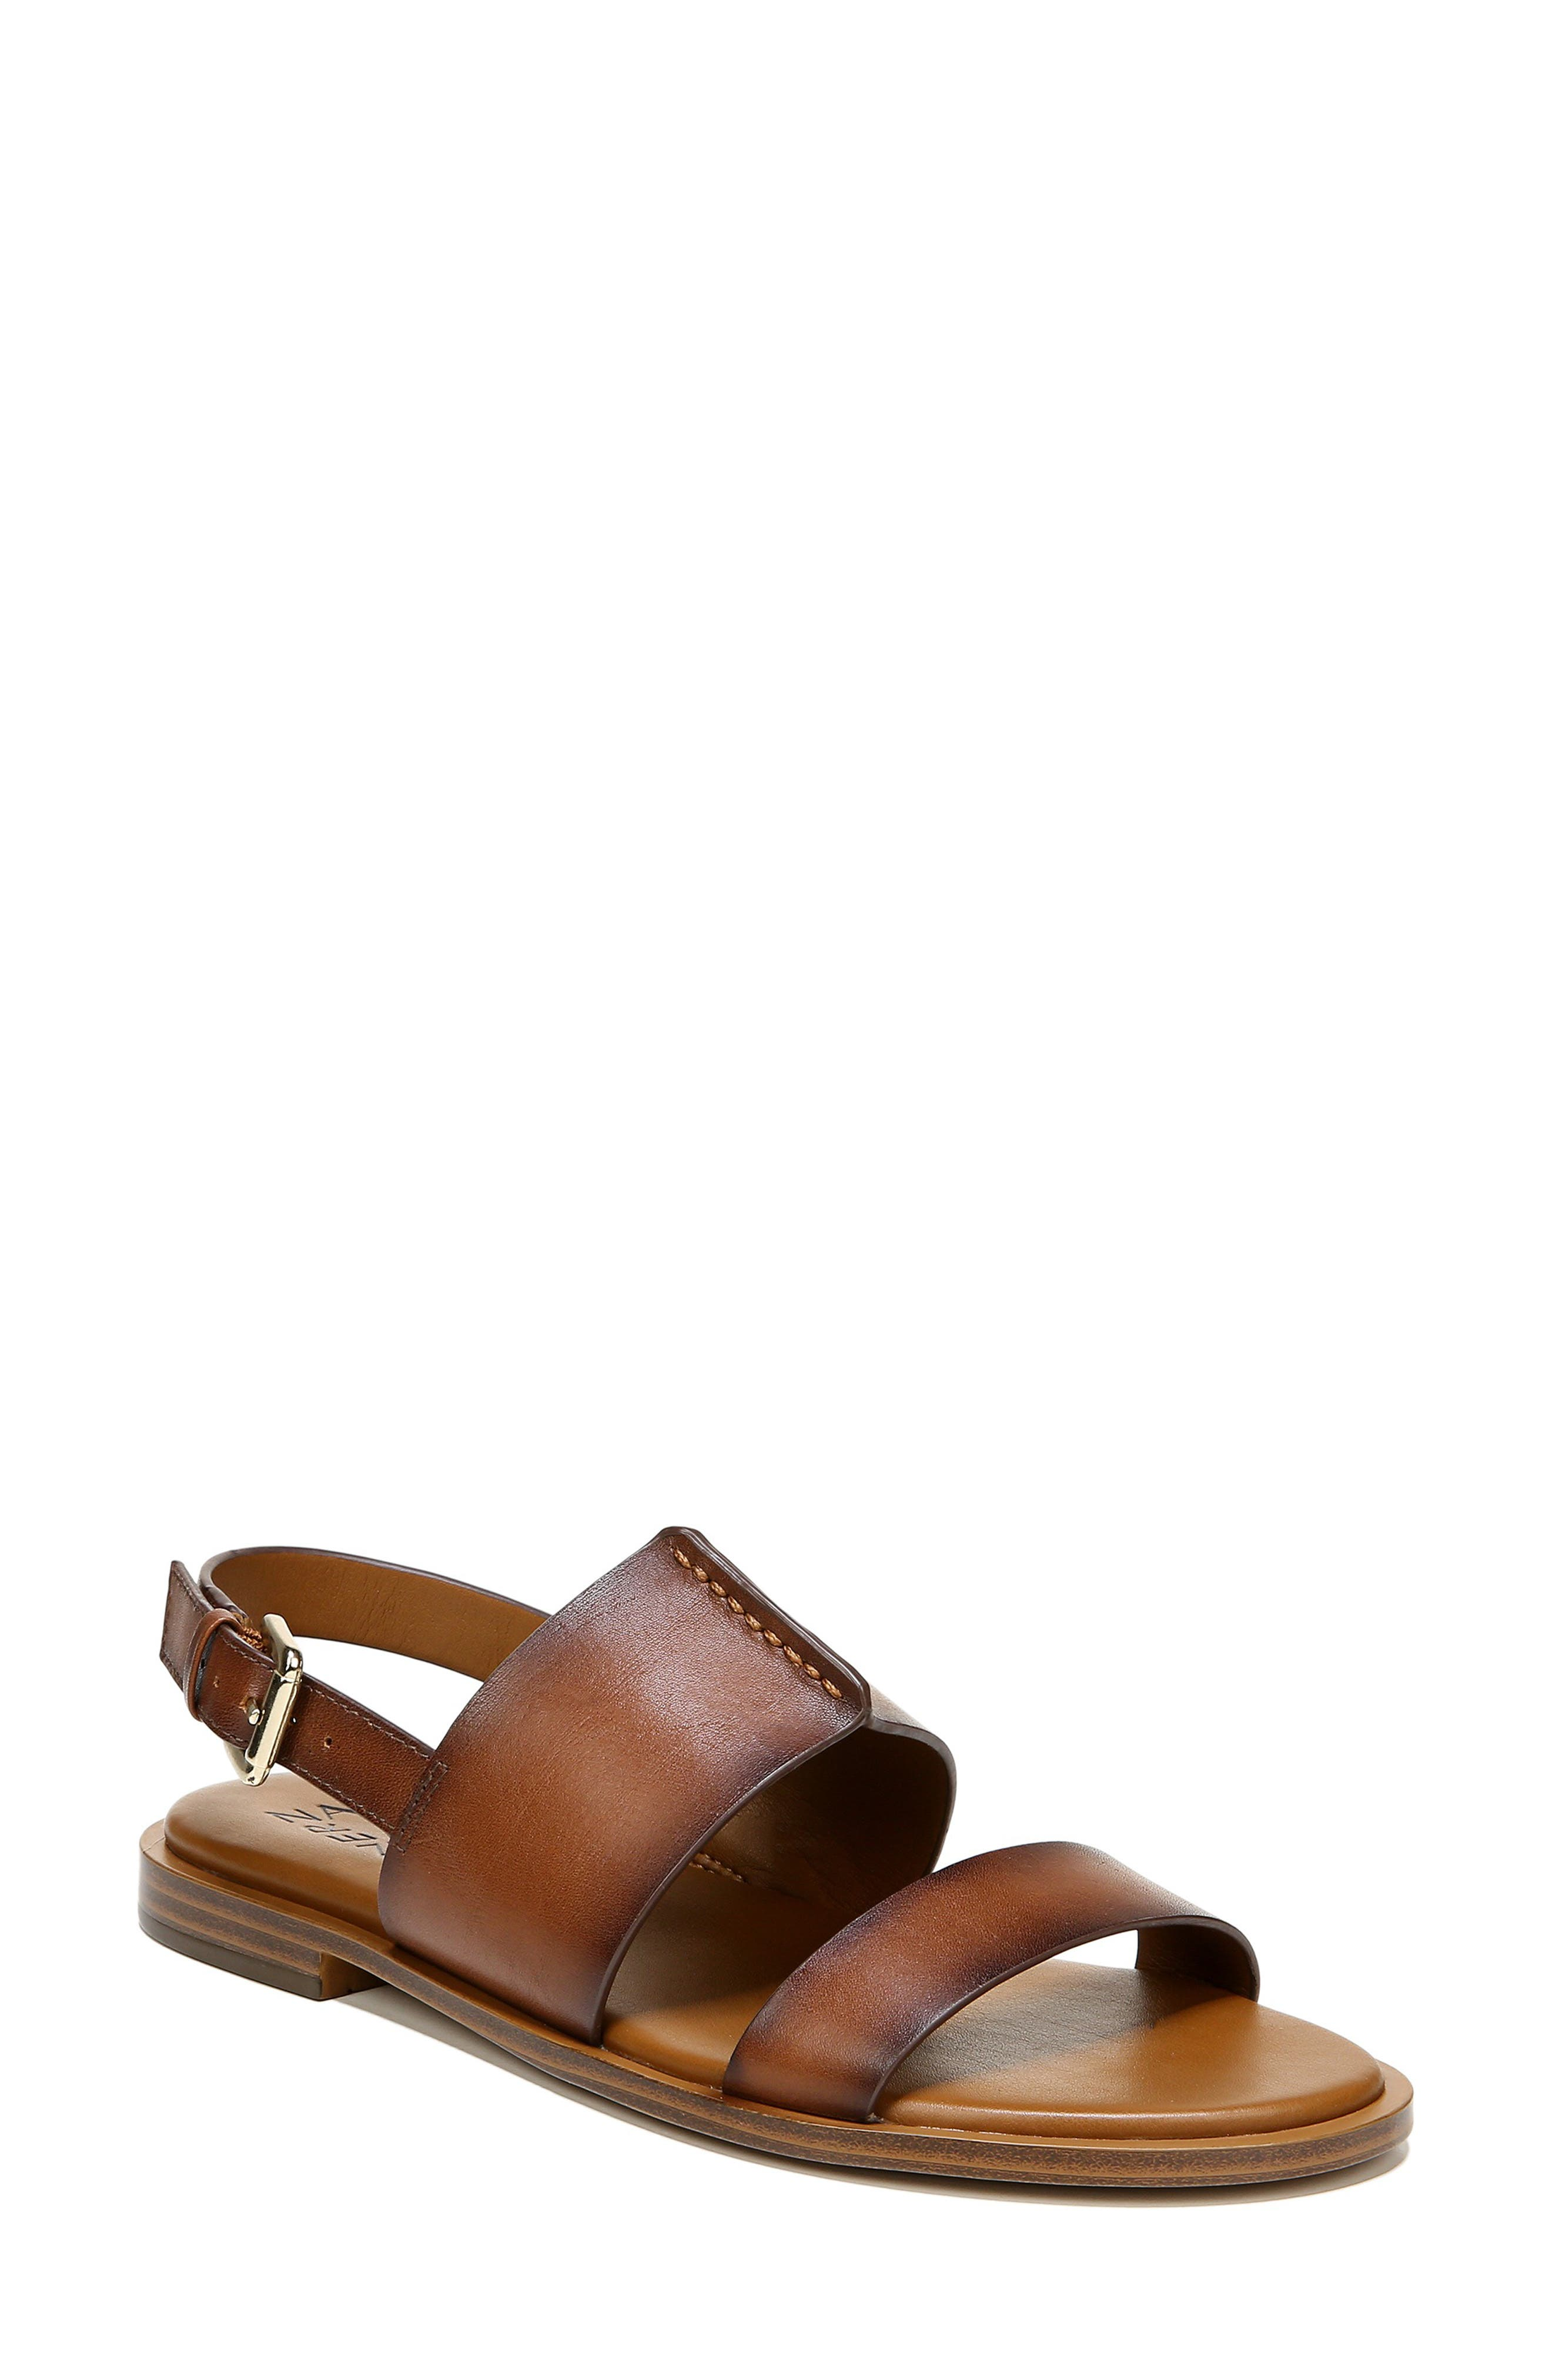 A comfort-focused sandal is designed with a supremely cushioned footbed and fitted with an adjustable slingback strap for a secure fit. Style Name: Naturalizer Fairfax Sandal (Women). Style Number: 5969122. Available in stores.